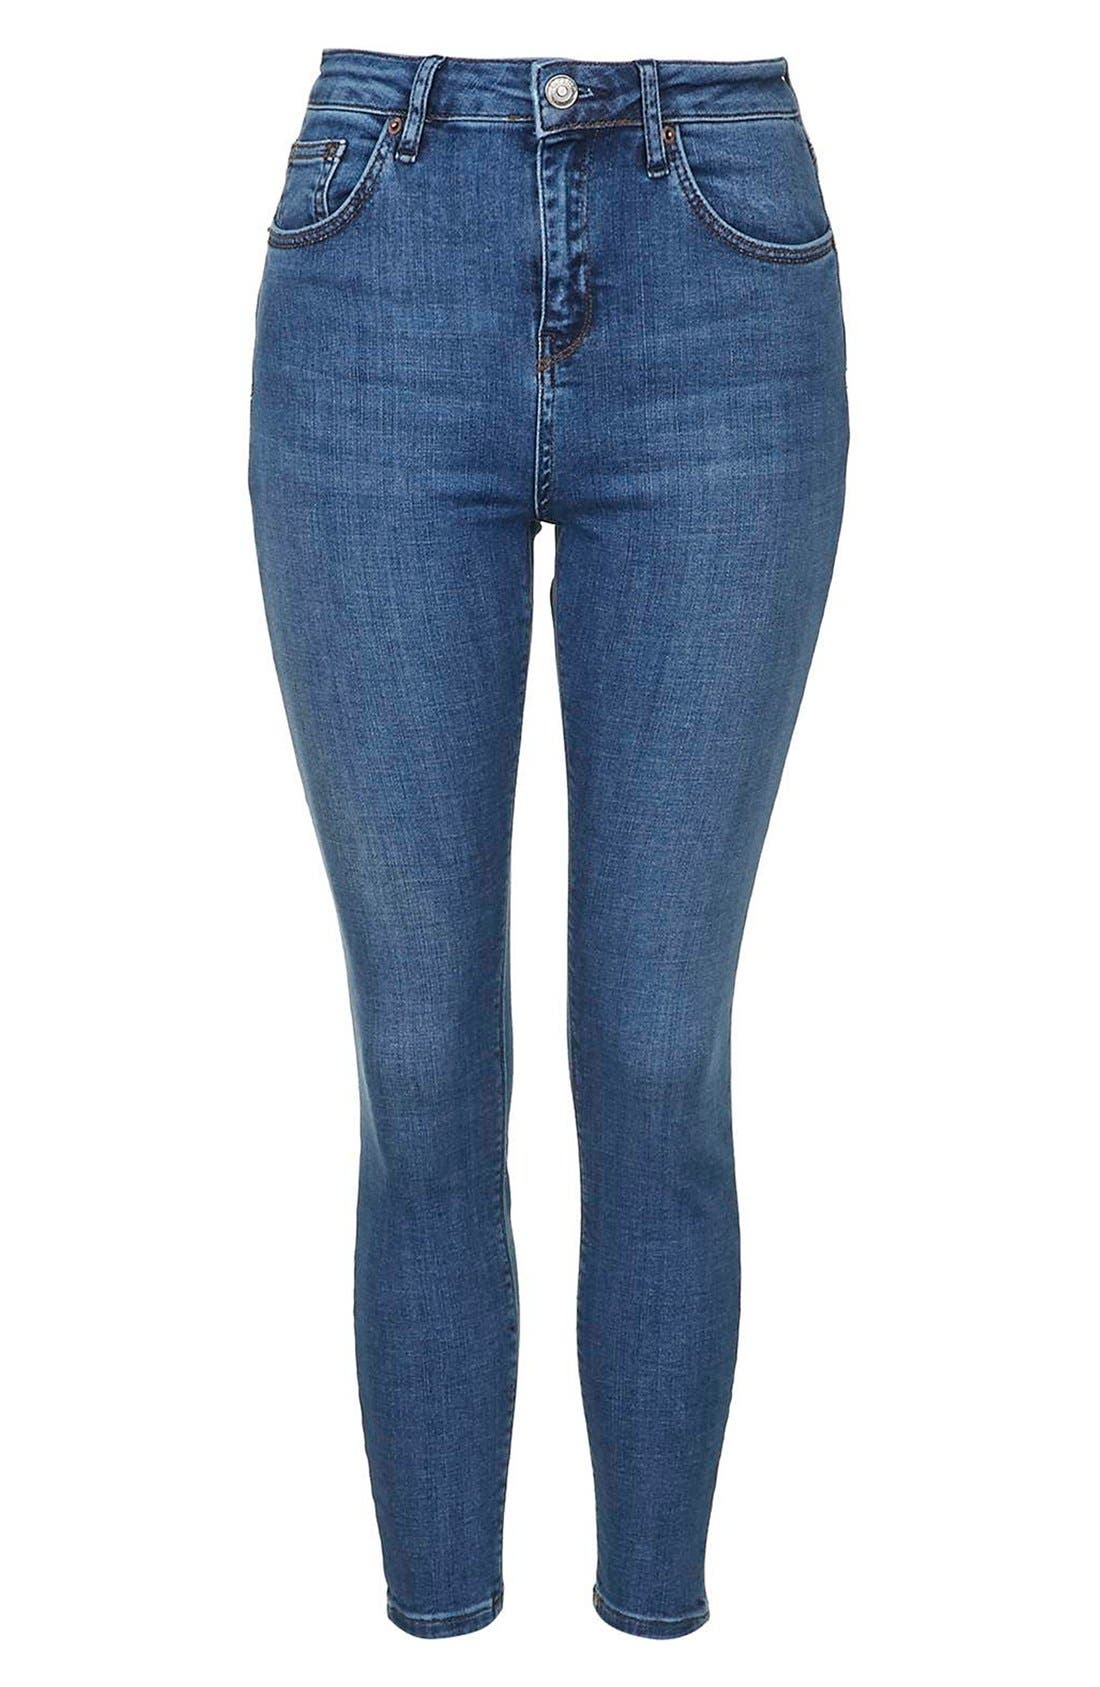 Alternate Image 3  - Topshop Moto 'Cain' High Rise Ankle Jeans (Blue) (Short)